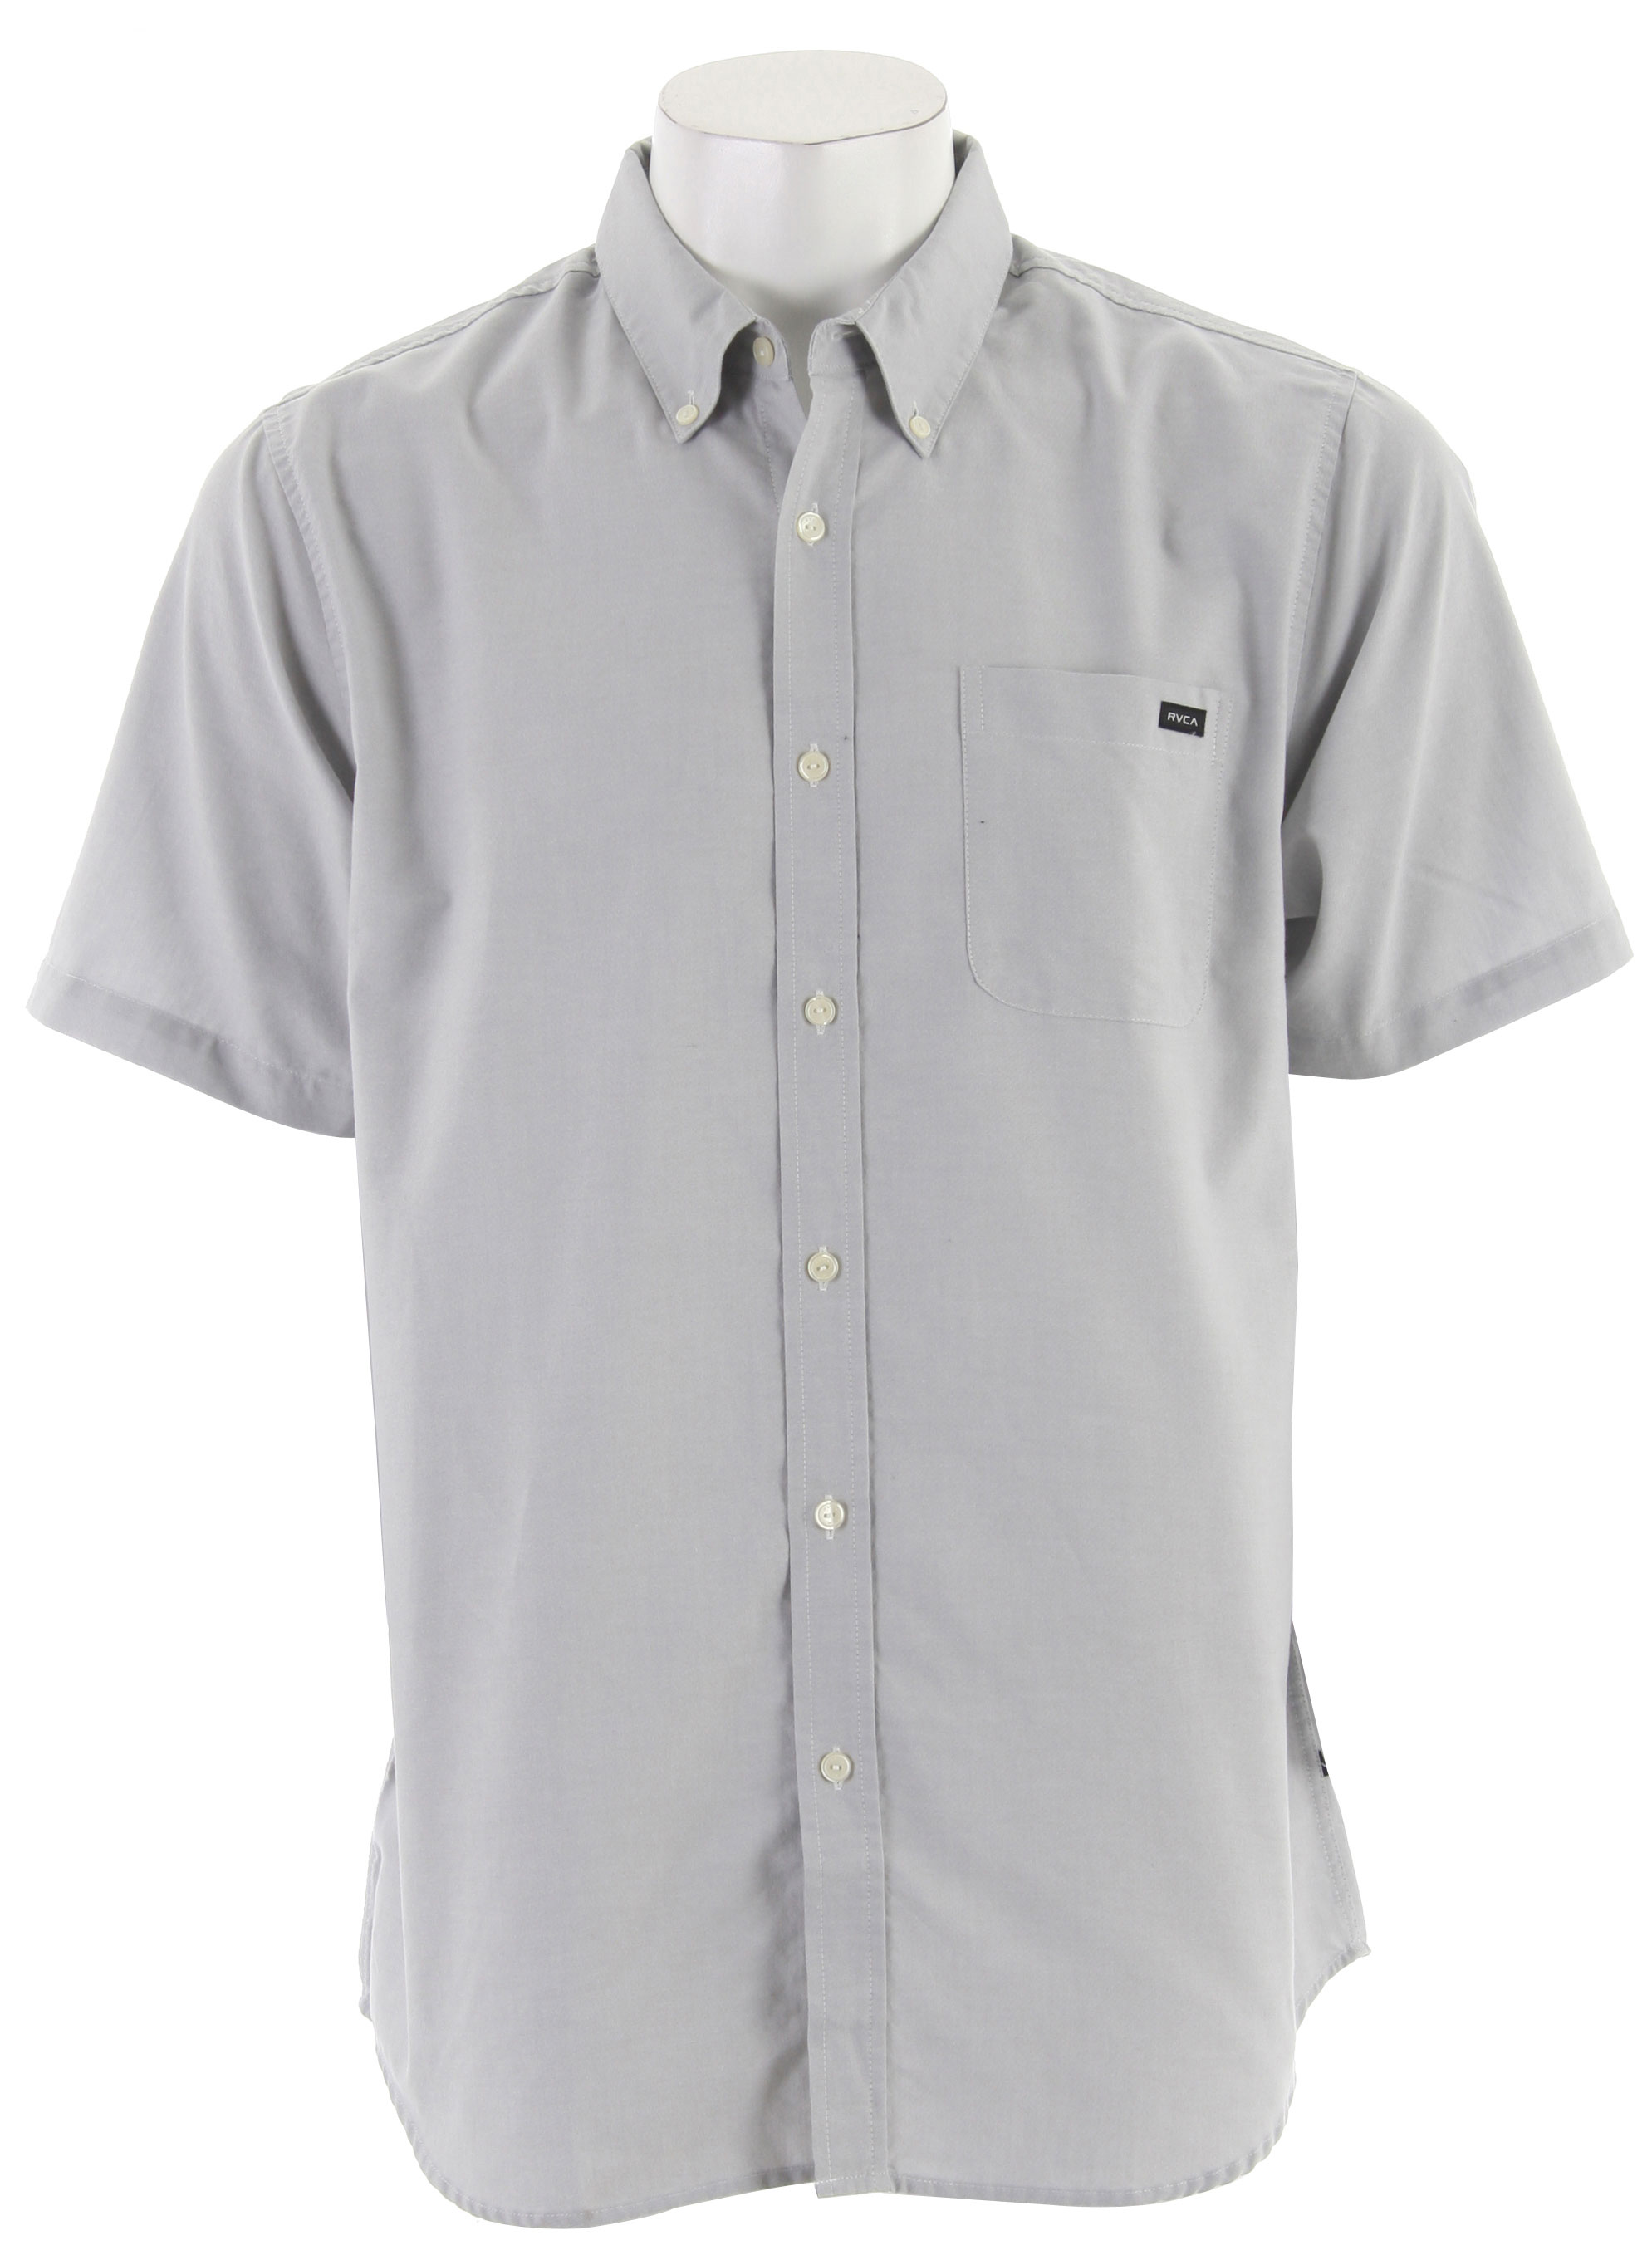 Key Features of the RVCA That'll Do Oxford S/S Shirt: Slim Fit Cotton Oxford Short Sleeve Button Down Patch Pocket Left Front Chest Buttons At Collar Points RVCA Woven Label At Front Pocket VA Flag Label At Bottom Left Side - $30.95